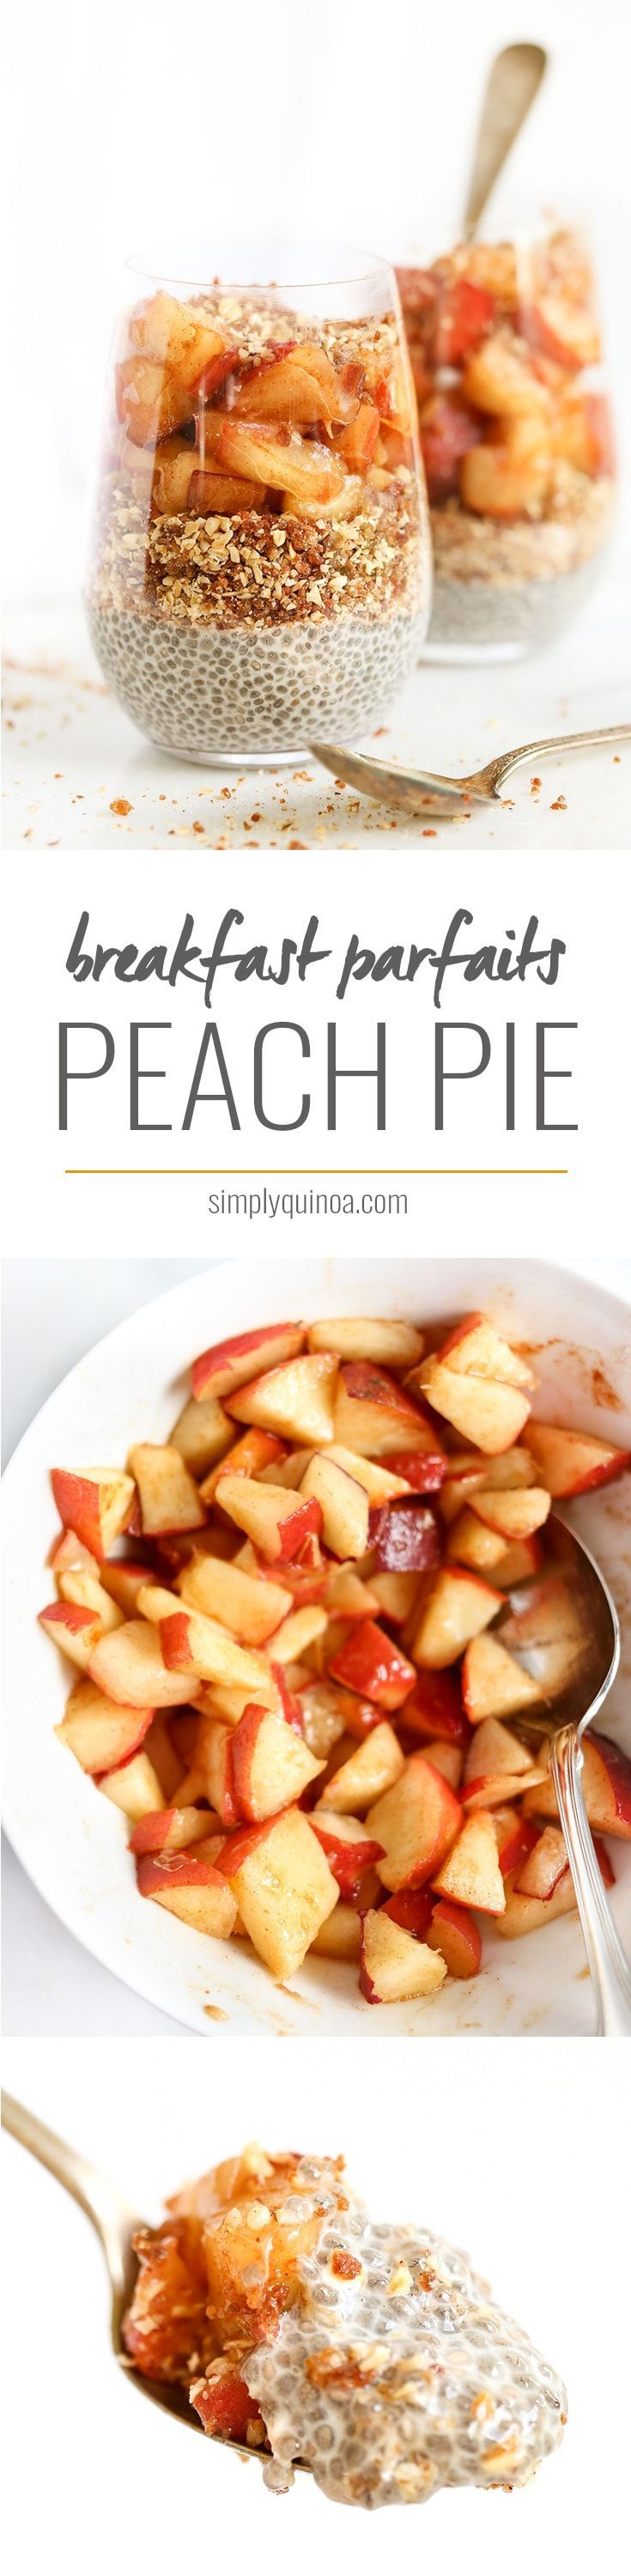 The ultimate way to start your day >> PEACH PIE BREAKFAST PARFAITS…